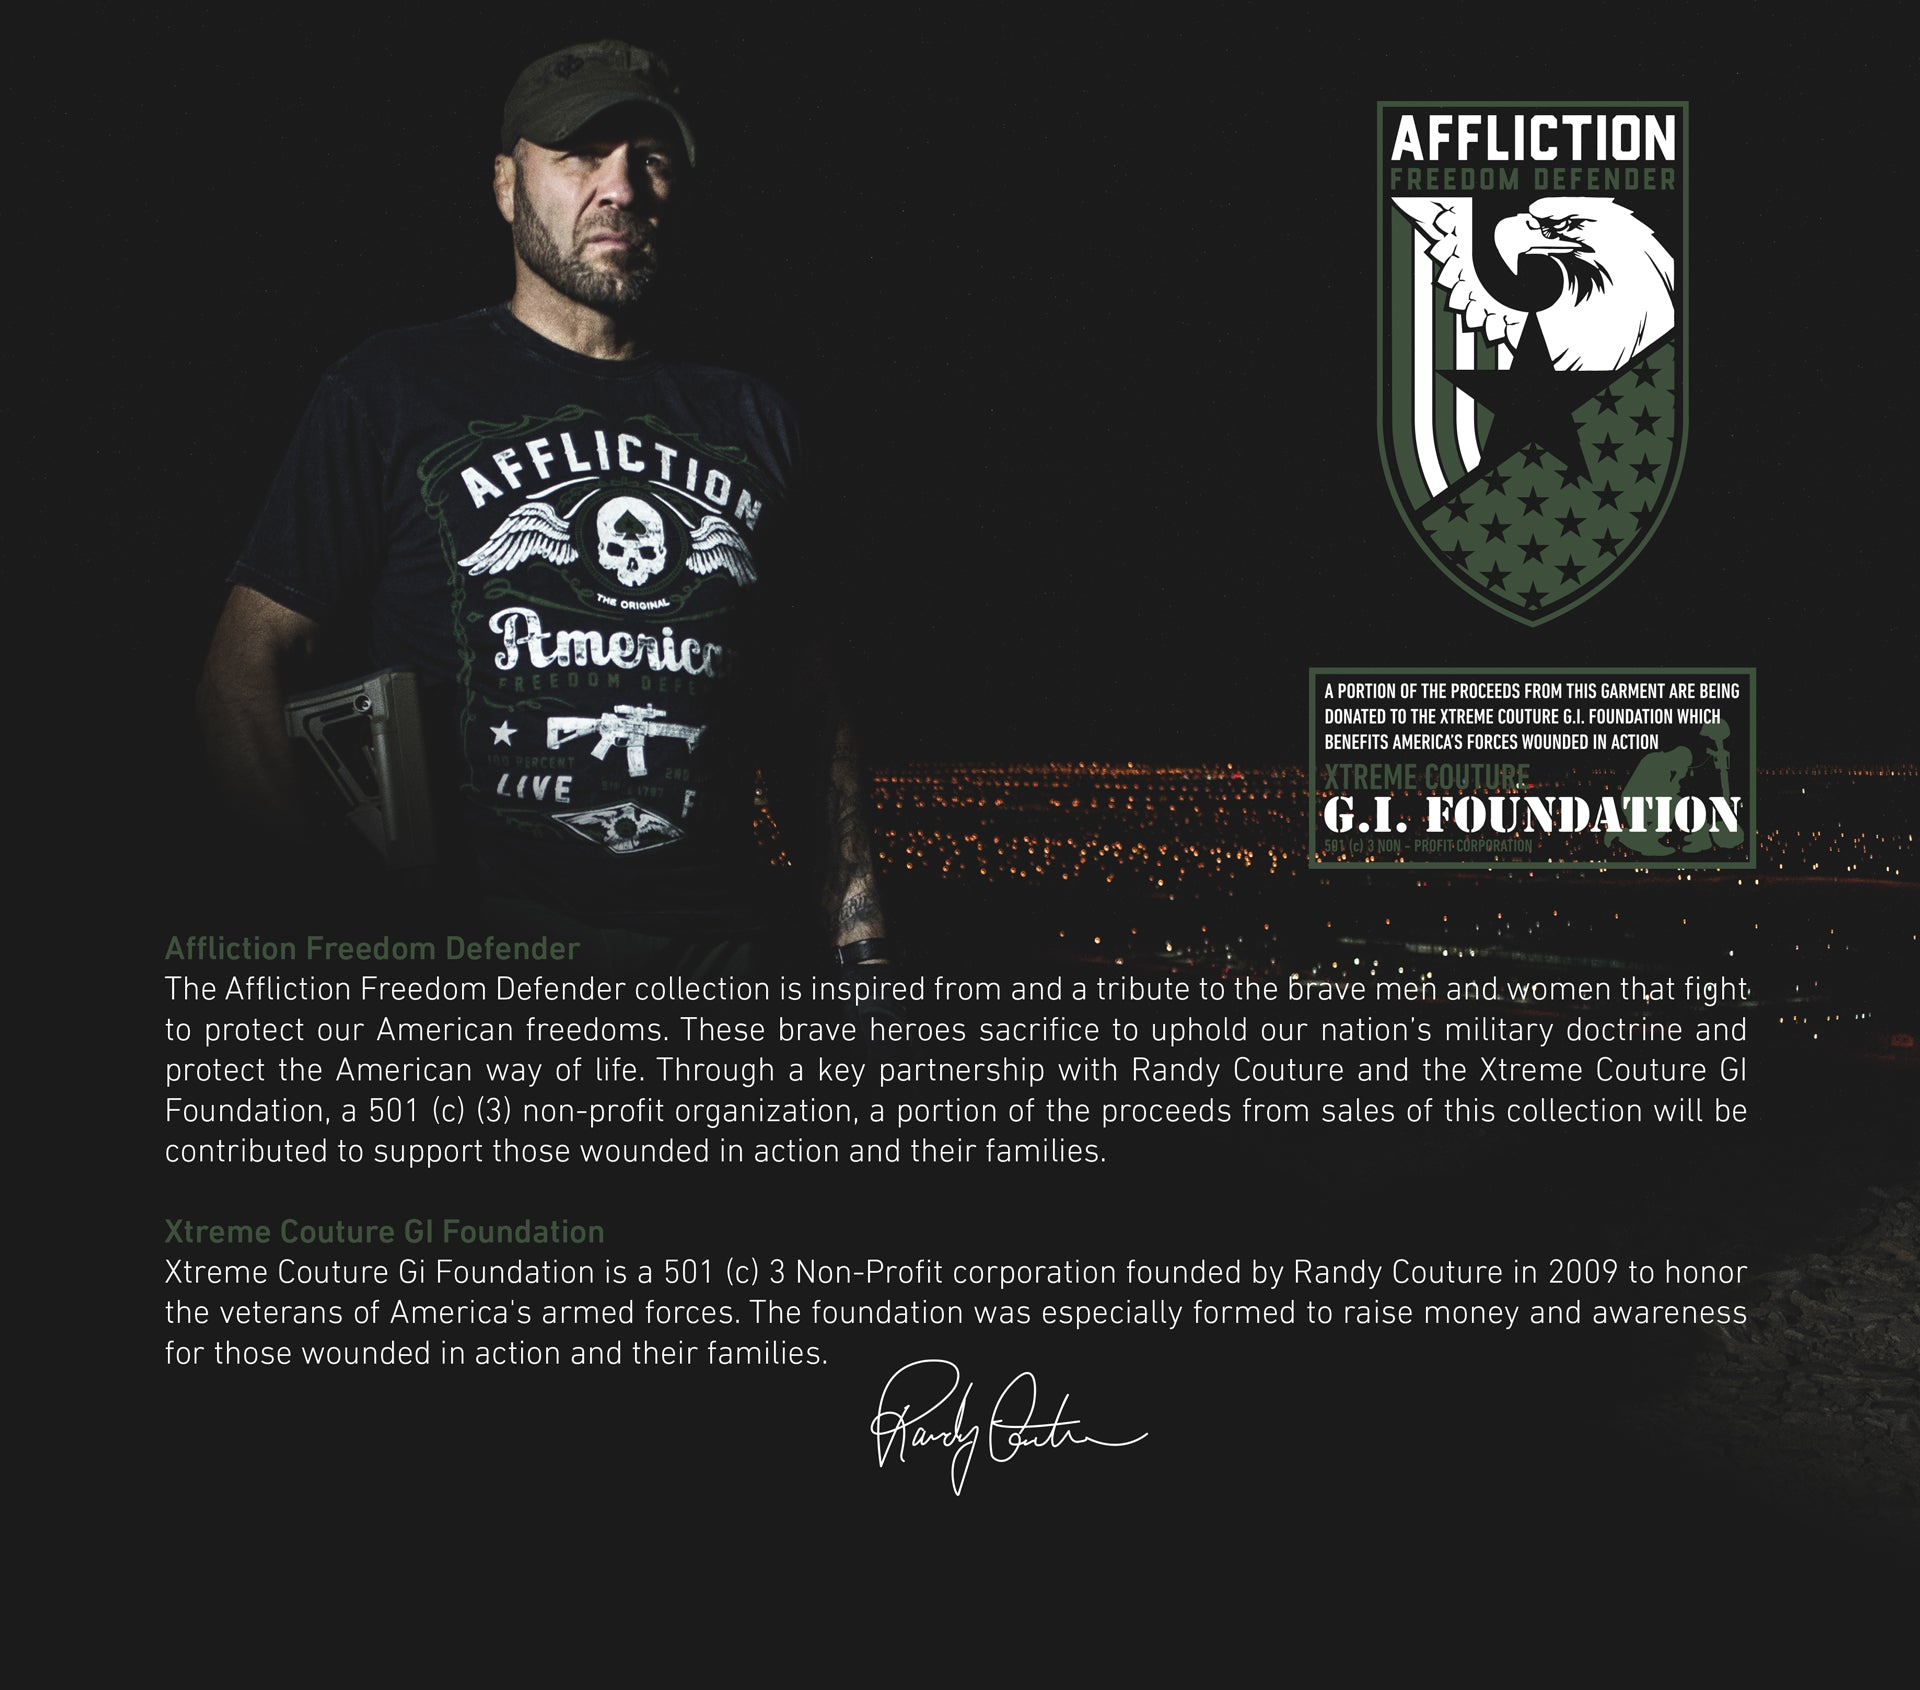 FREEDOM DEFENDER BY AFFLICTION WITH RANDY COUTURE